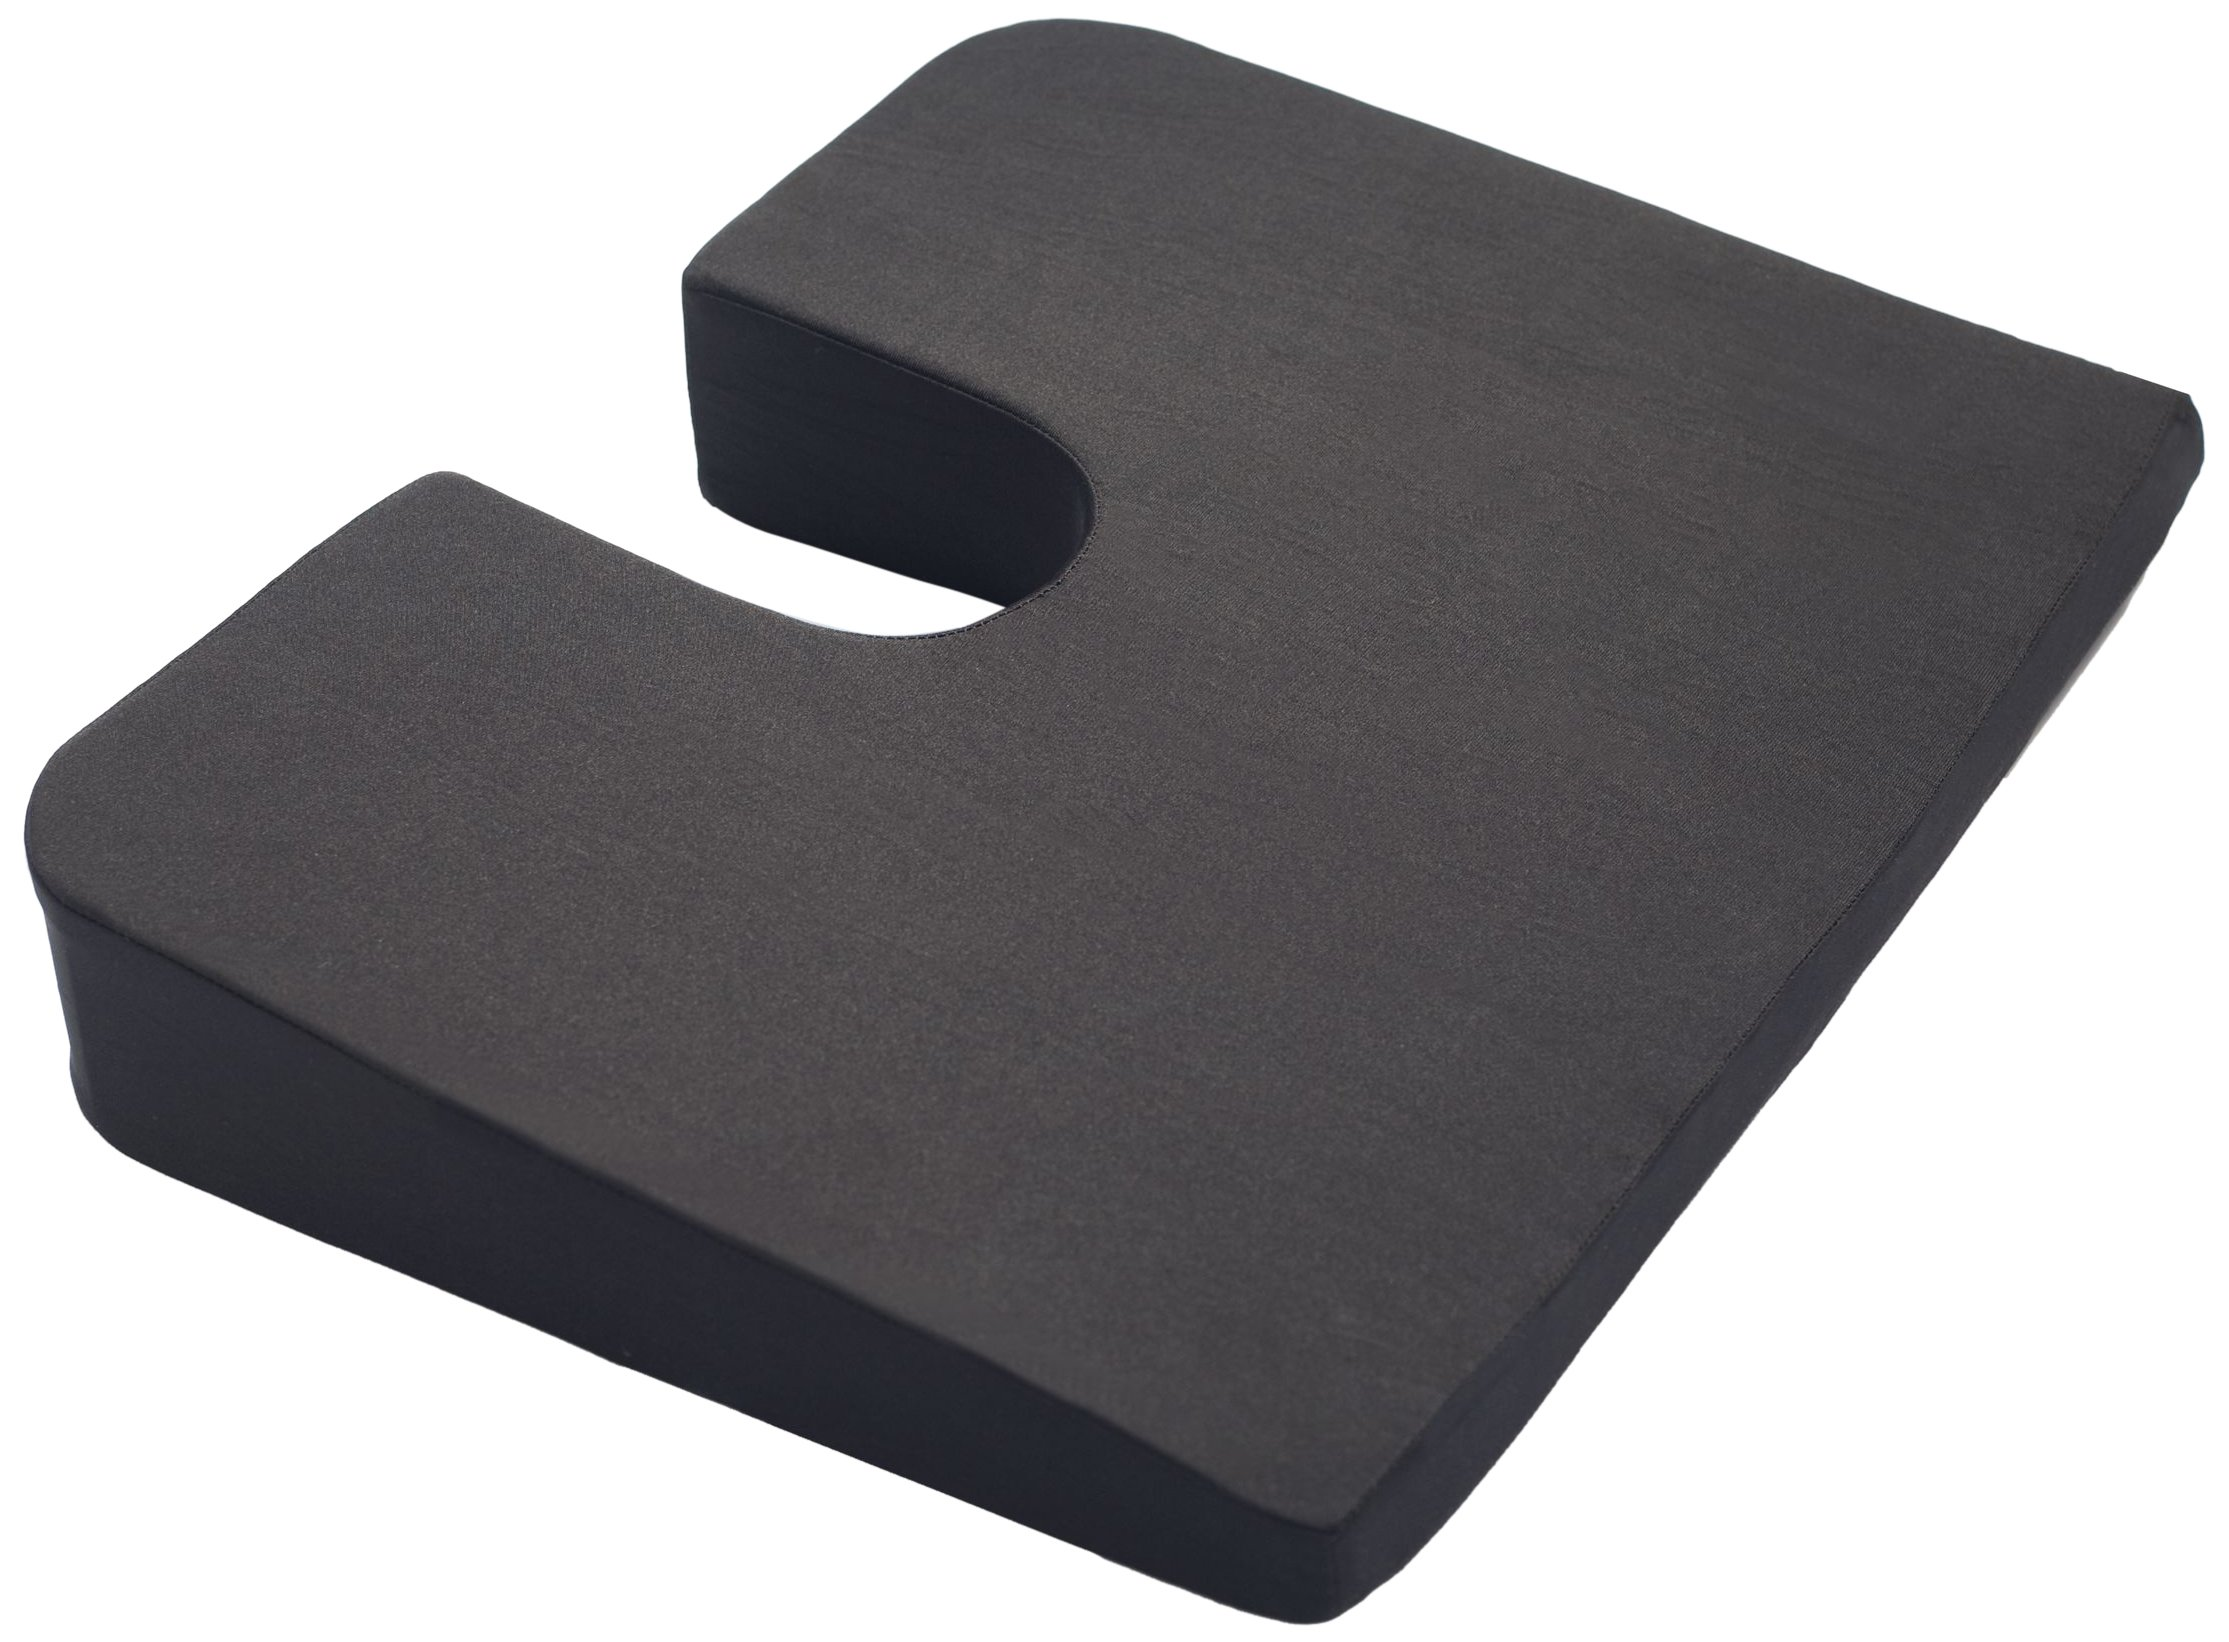 Kölbs Cushions Premium Orthopedic Coccyx Foam Cushion, Black